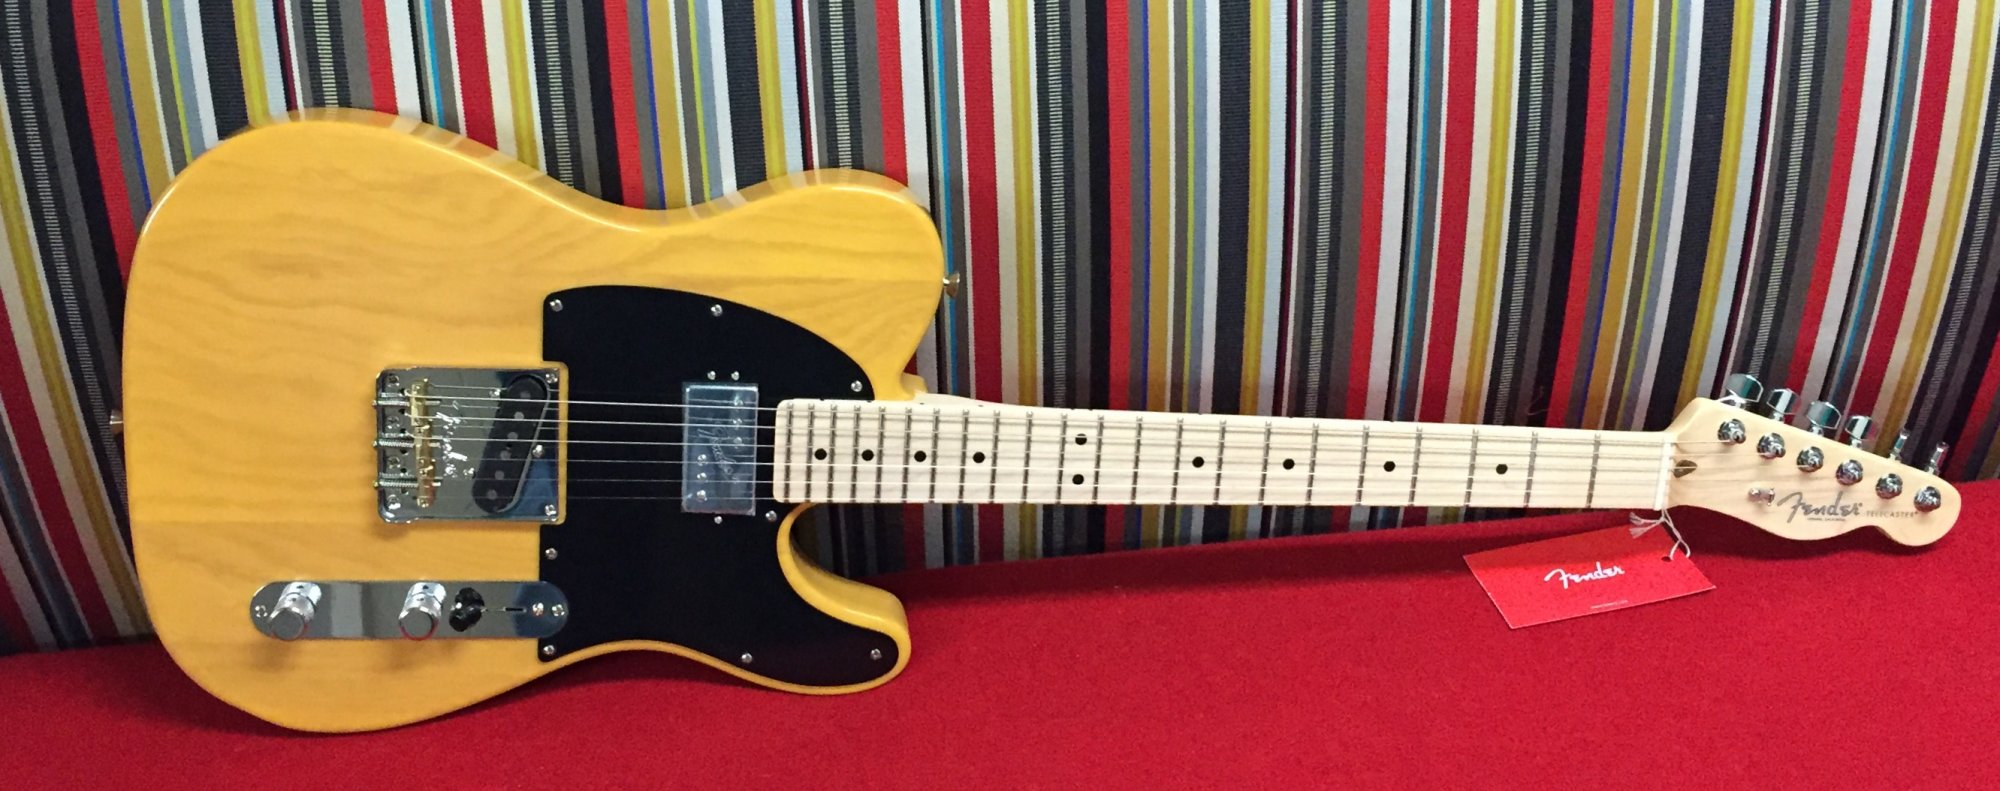 Fender Limited Edition American Pro Telecaster with Shawbucker - Butterscotch Blonde